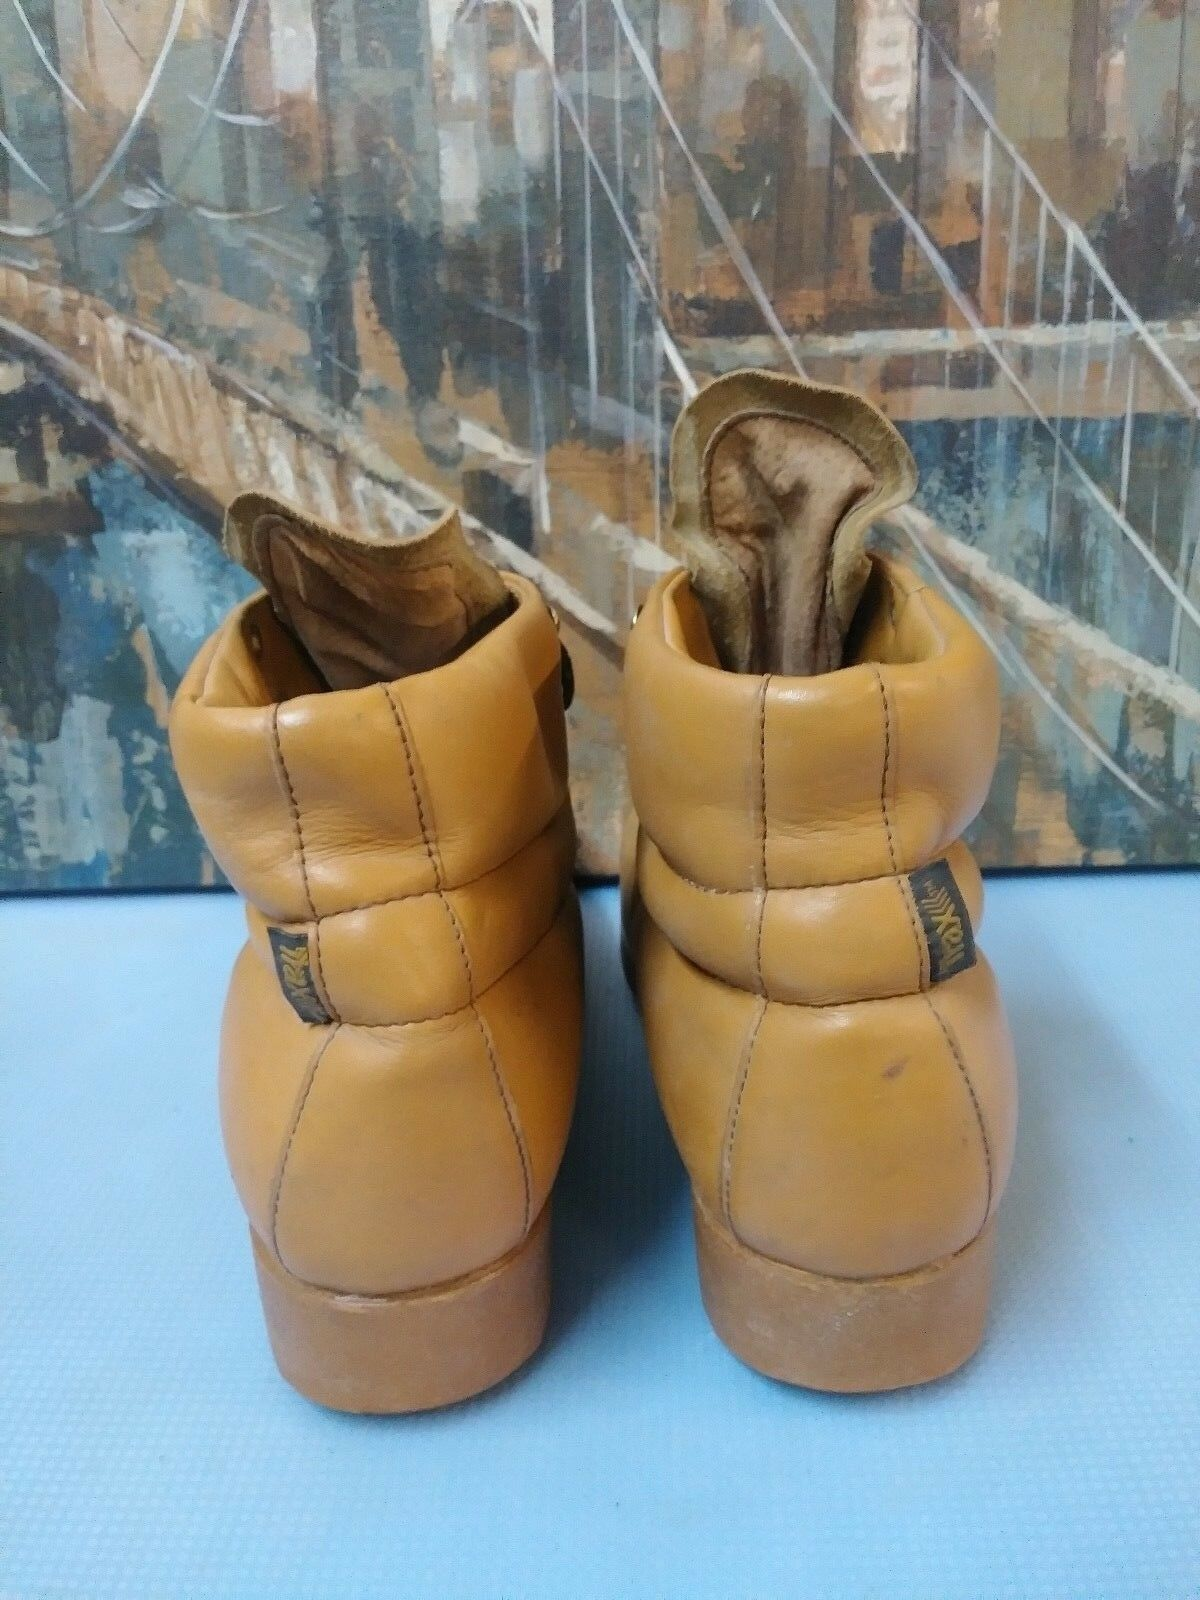 RAX Outdoor Ankle Stivali Style 119 Size 9 Donna 7.5 Uomo Yellow